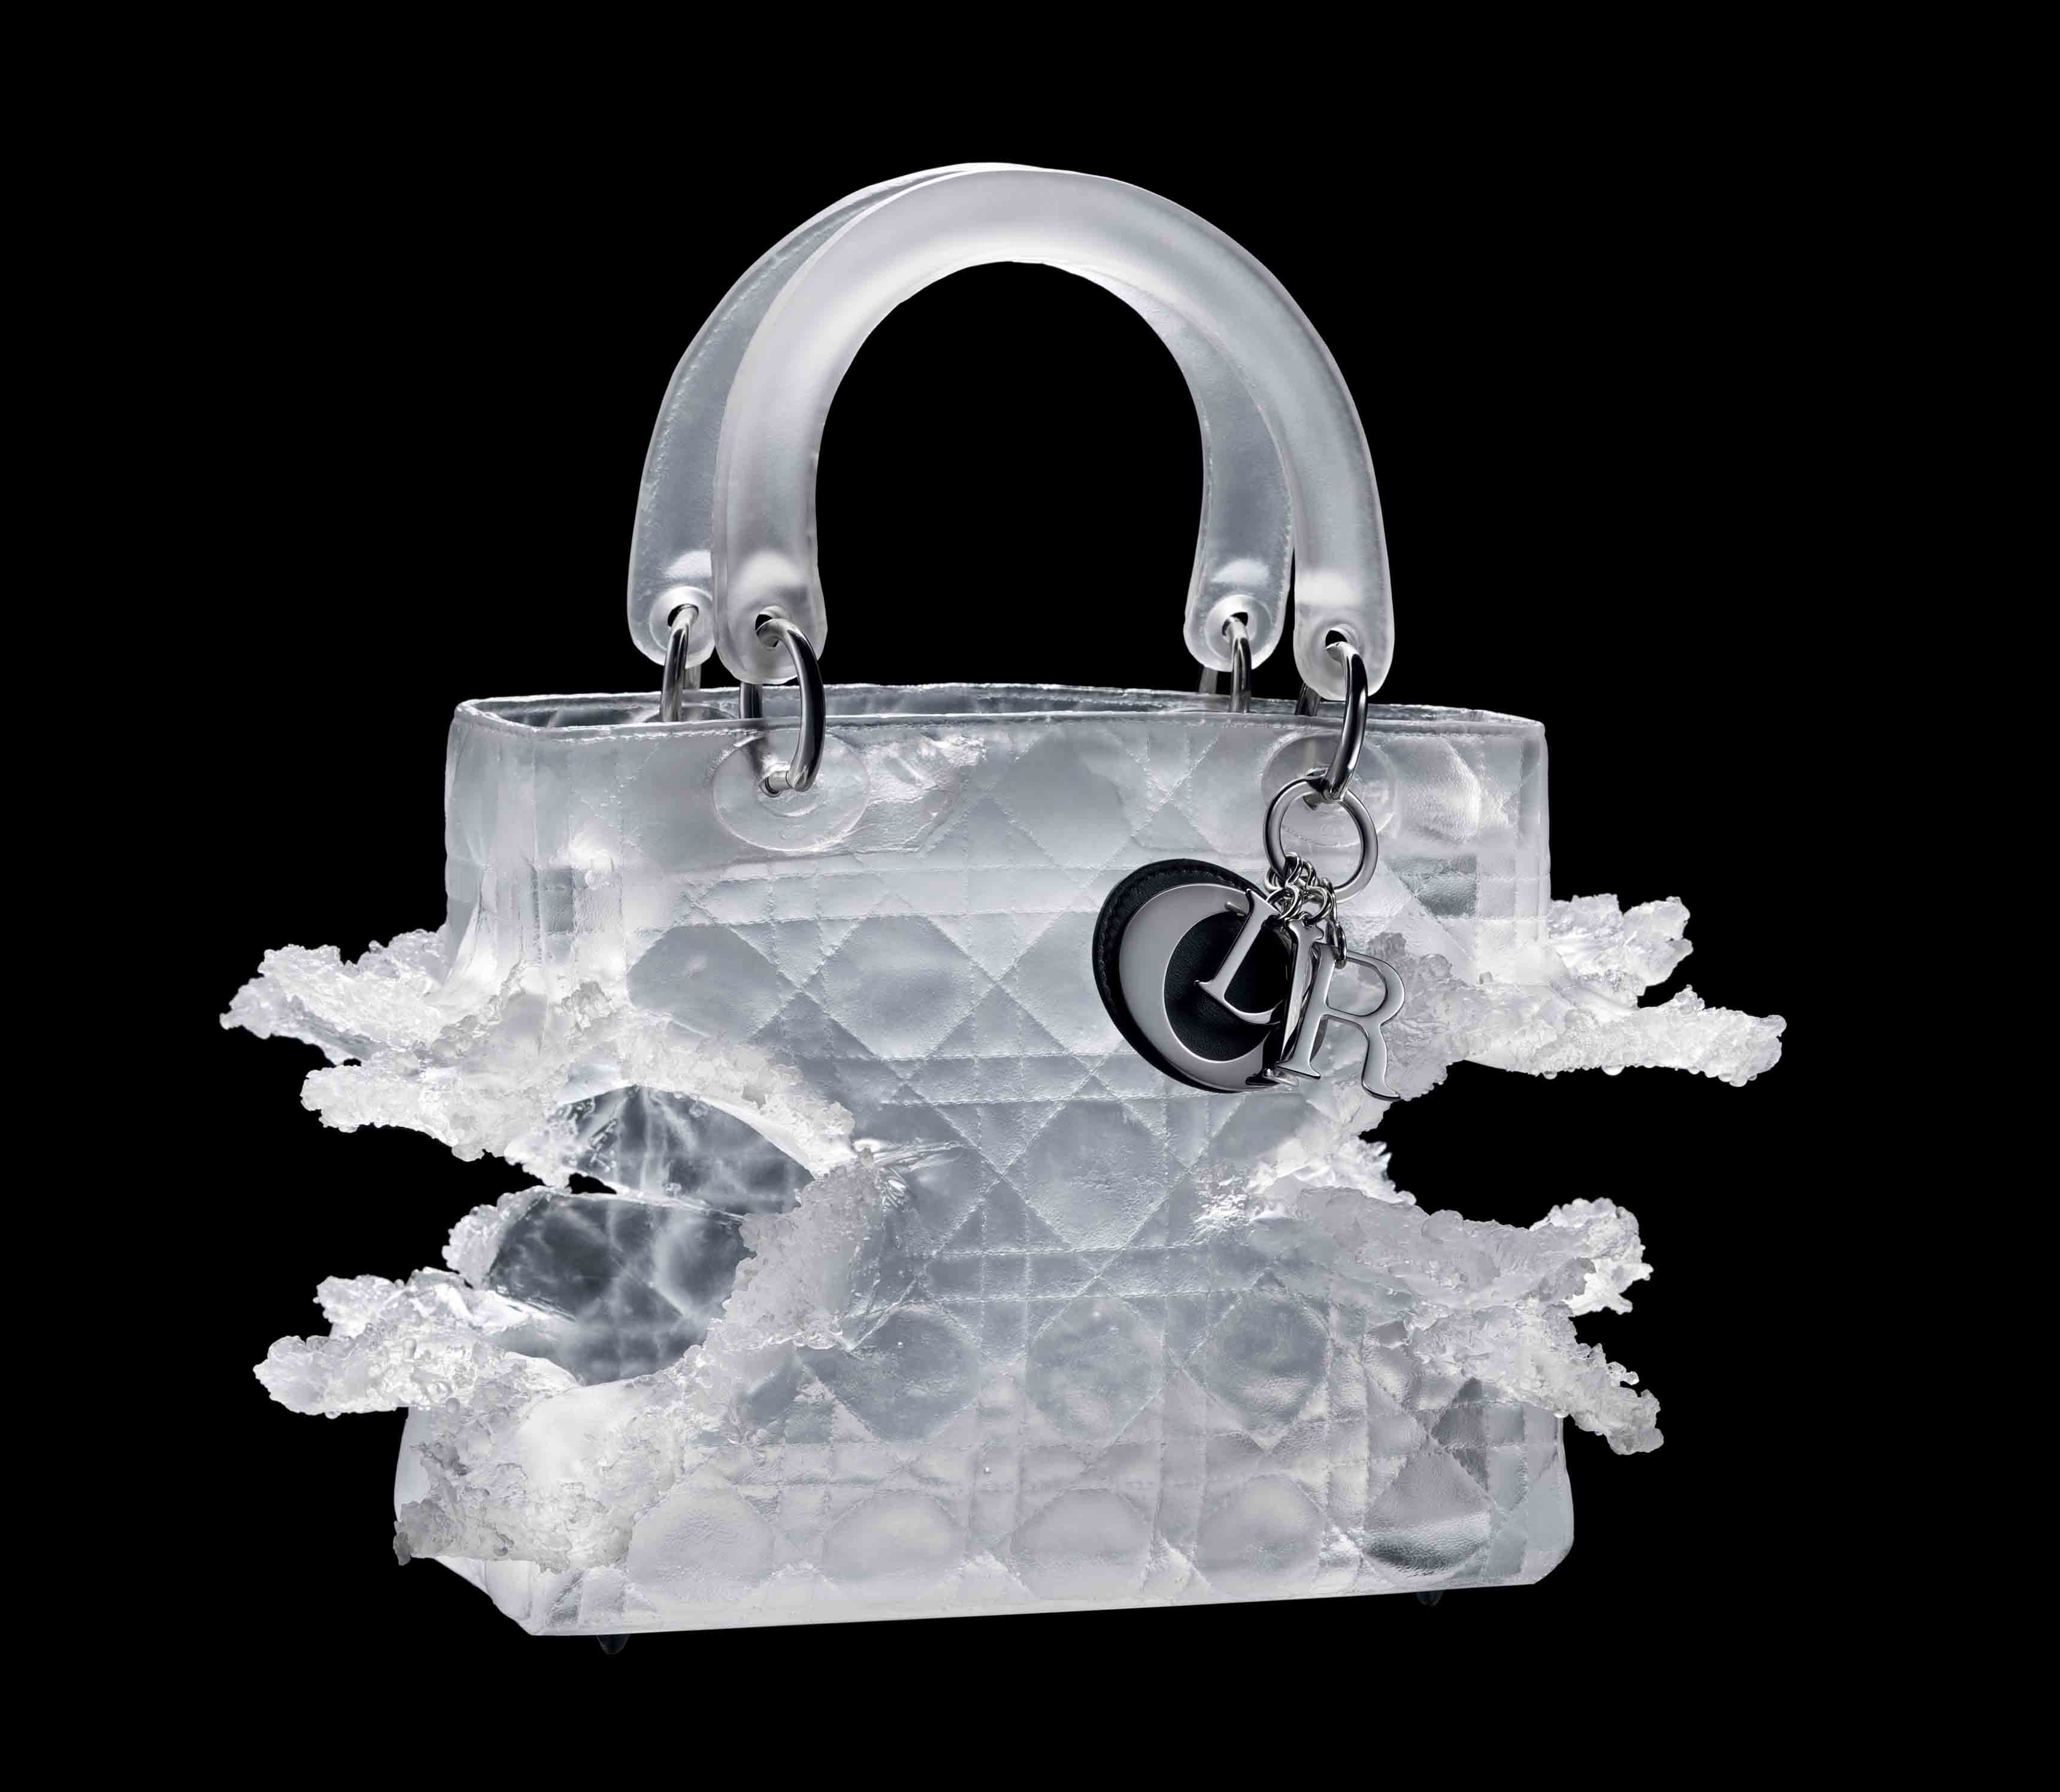 Lady Dior as seen by - Art Basel Hong Kong - Olympia Carry